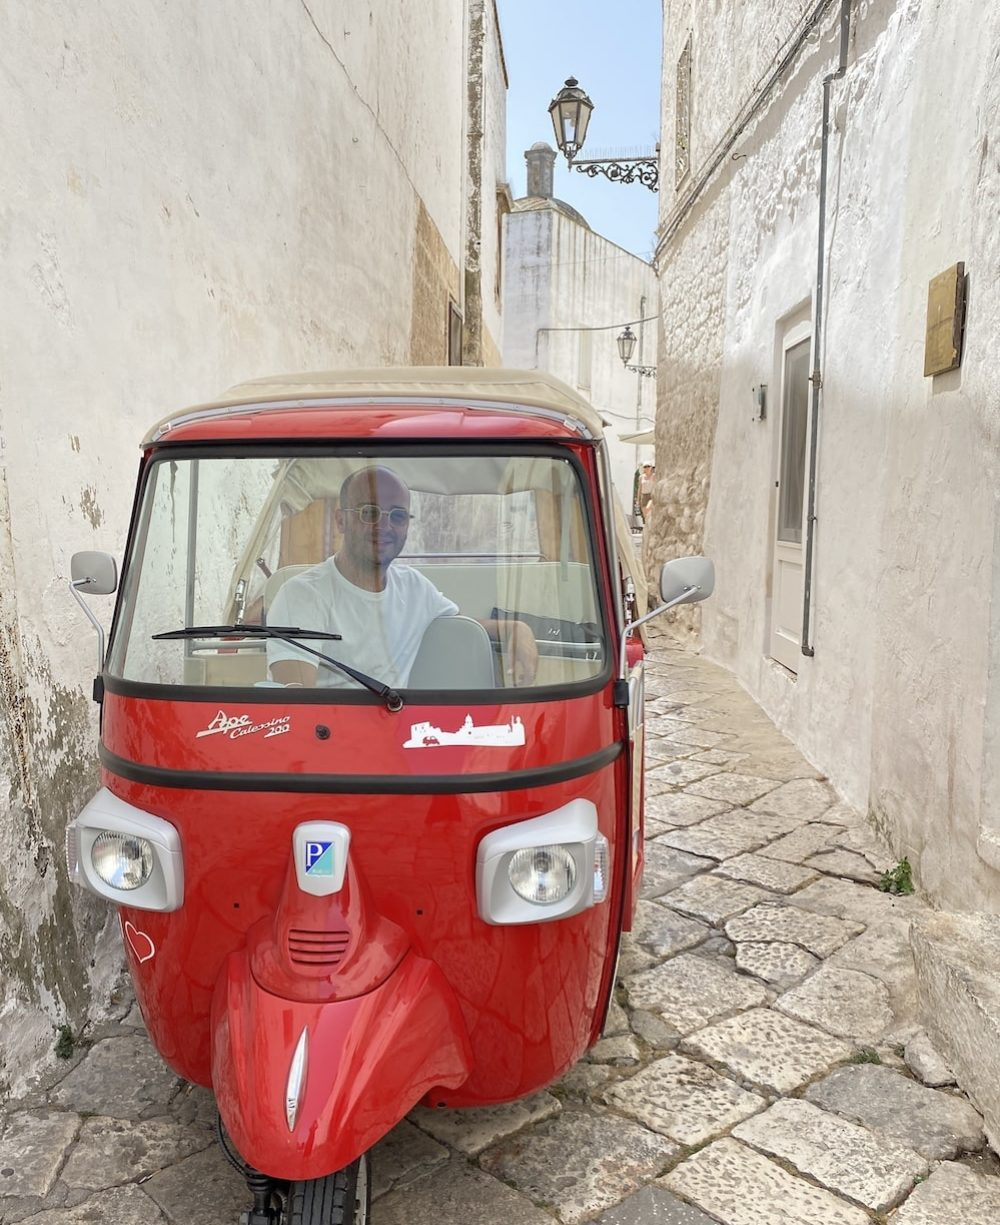 A Tour with a special taxi